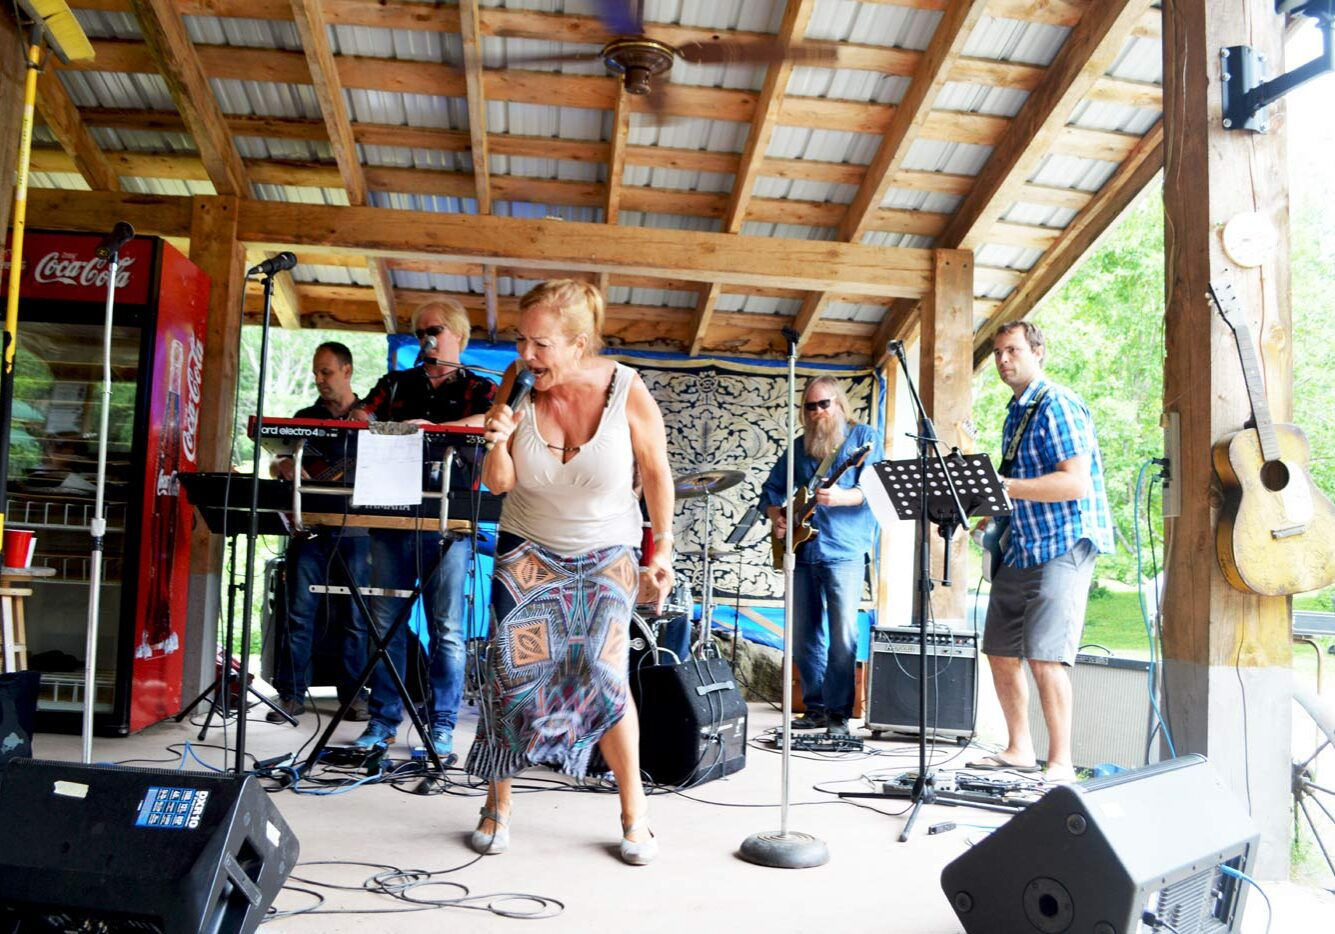 Etwell Concert Series performers blasting out the blues